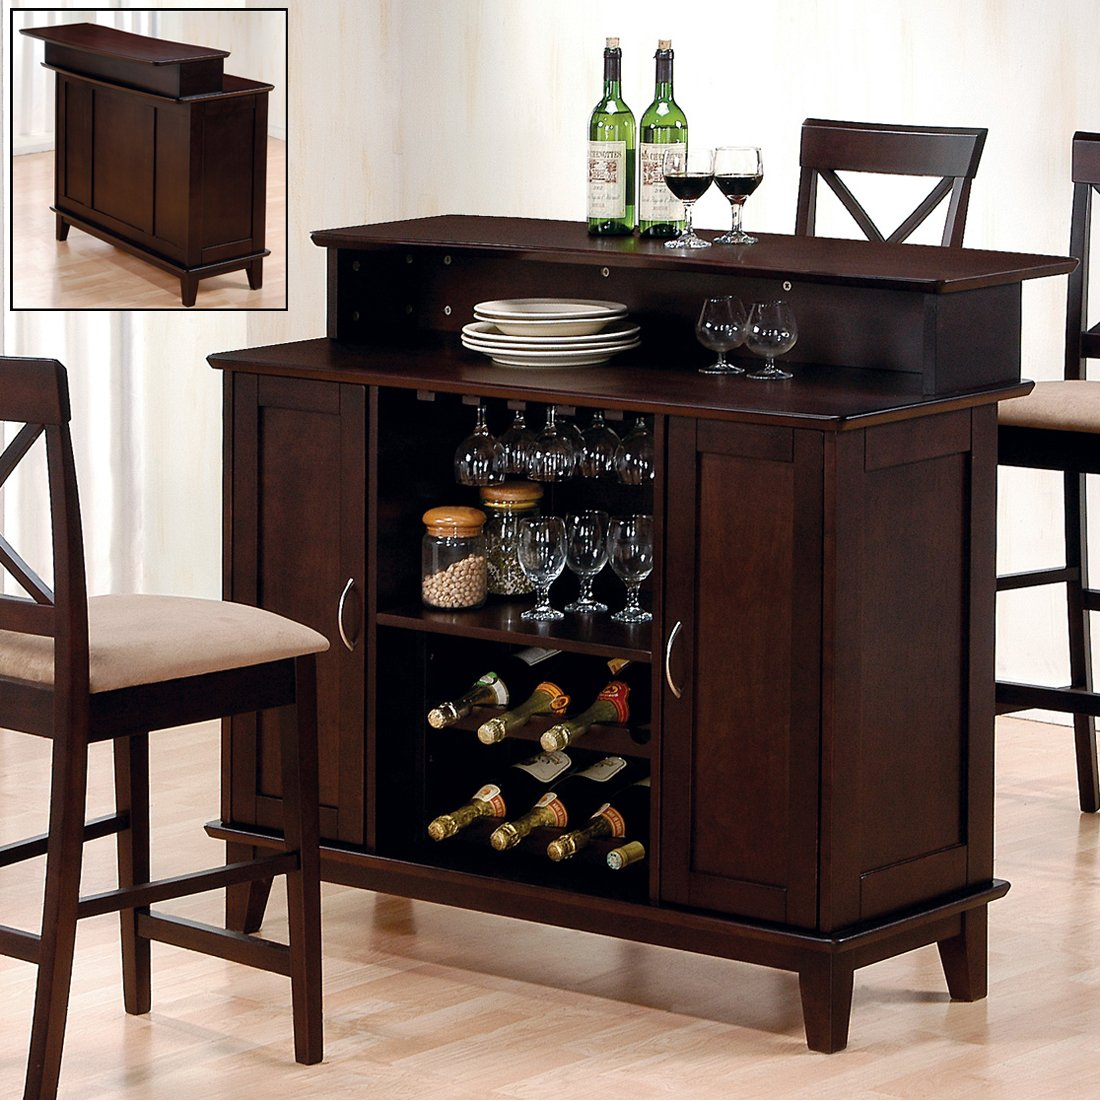 Small Bar Furniture For Apartment | Best Decor Things